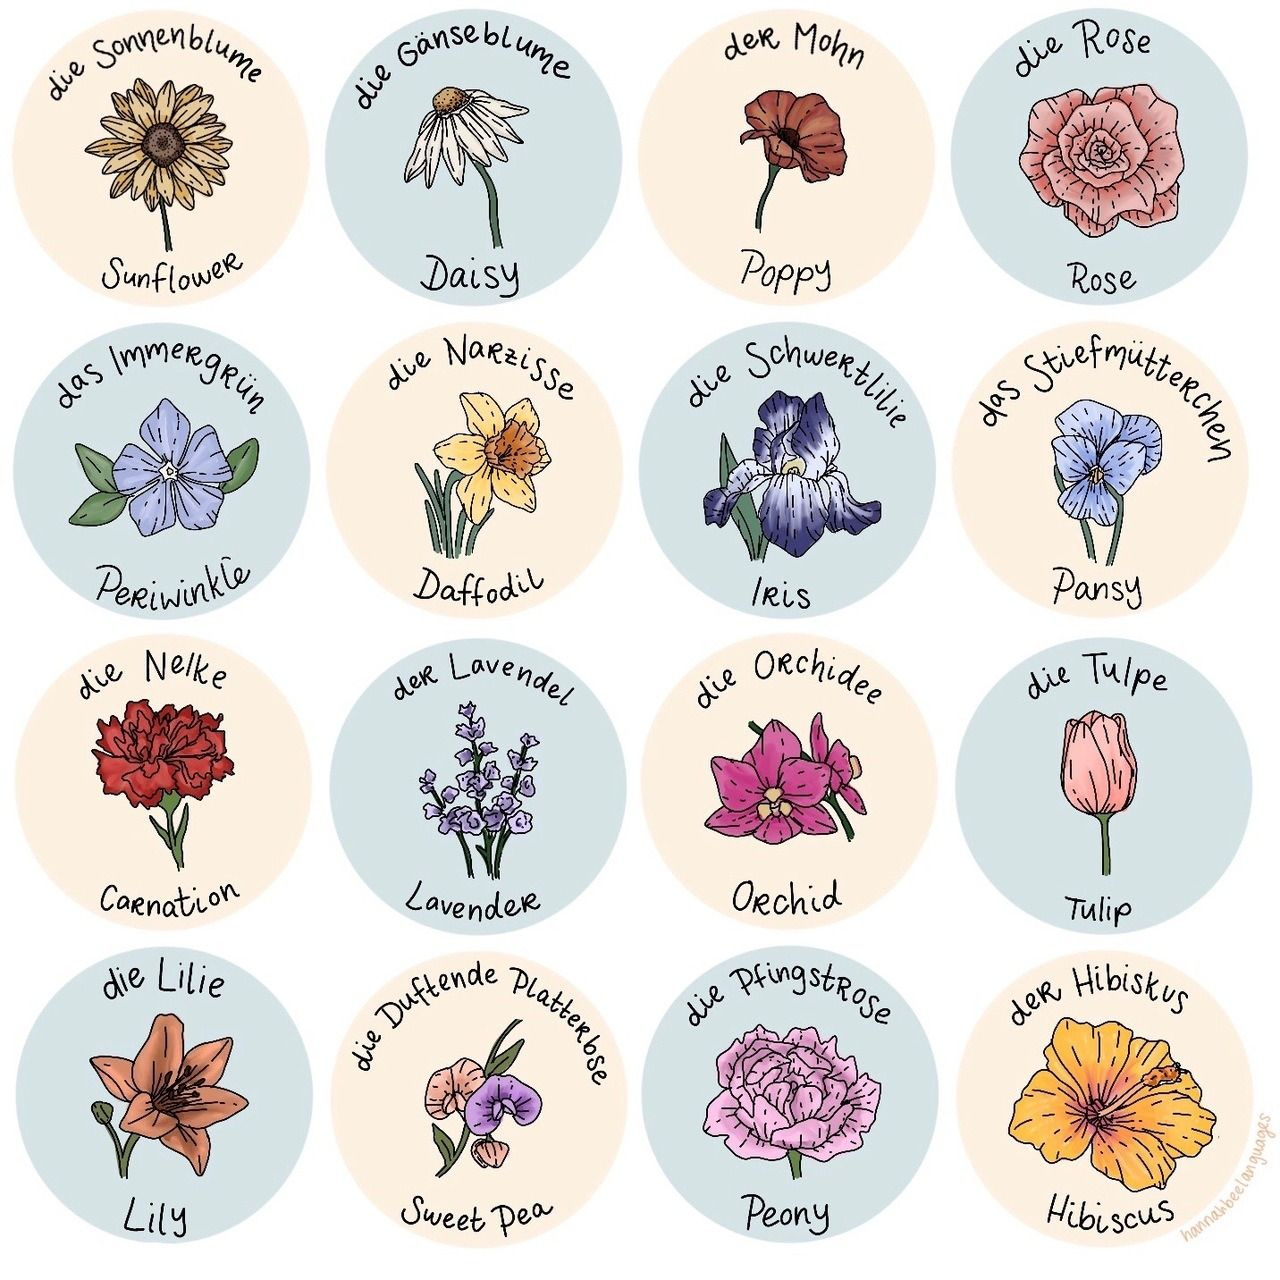 a Tired sophomore (With images) Flower names, Flowers